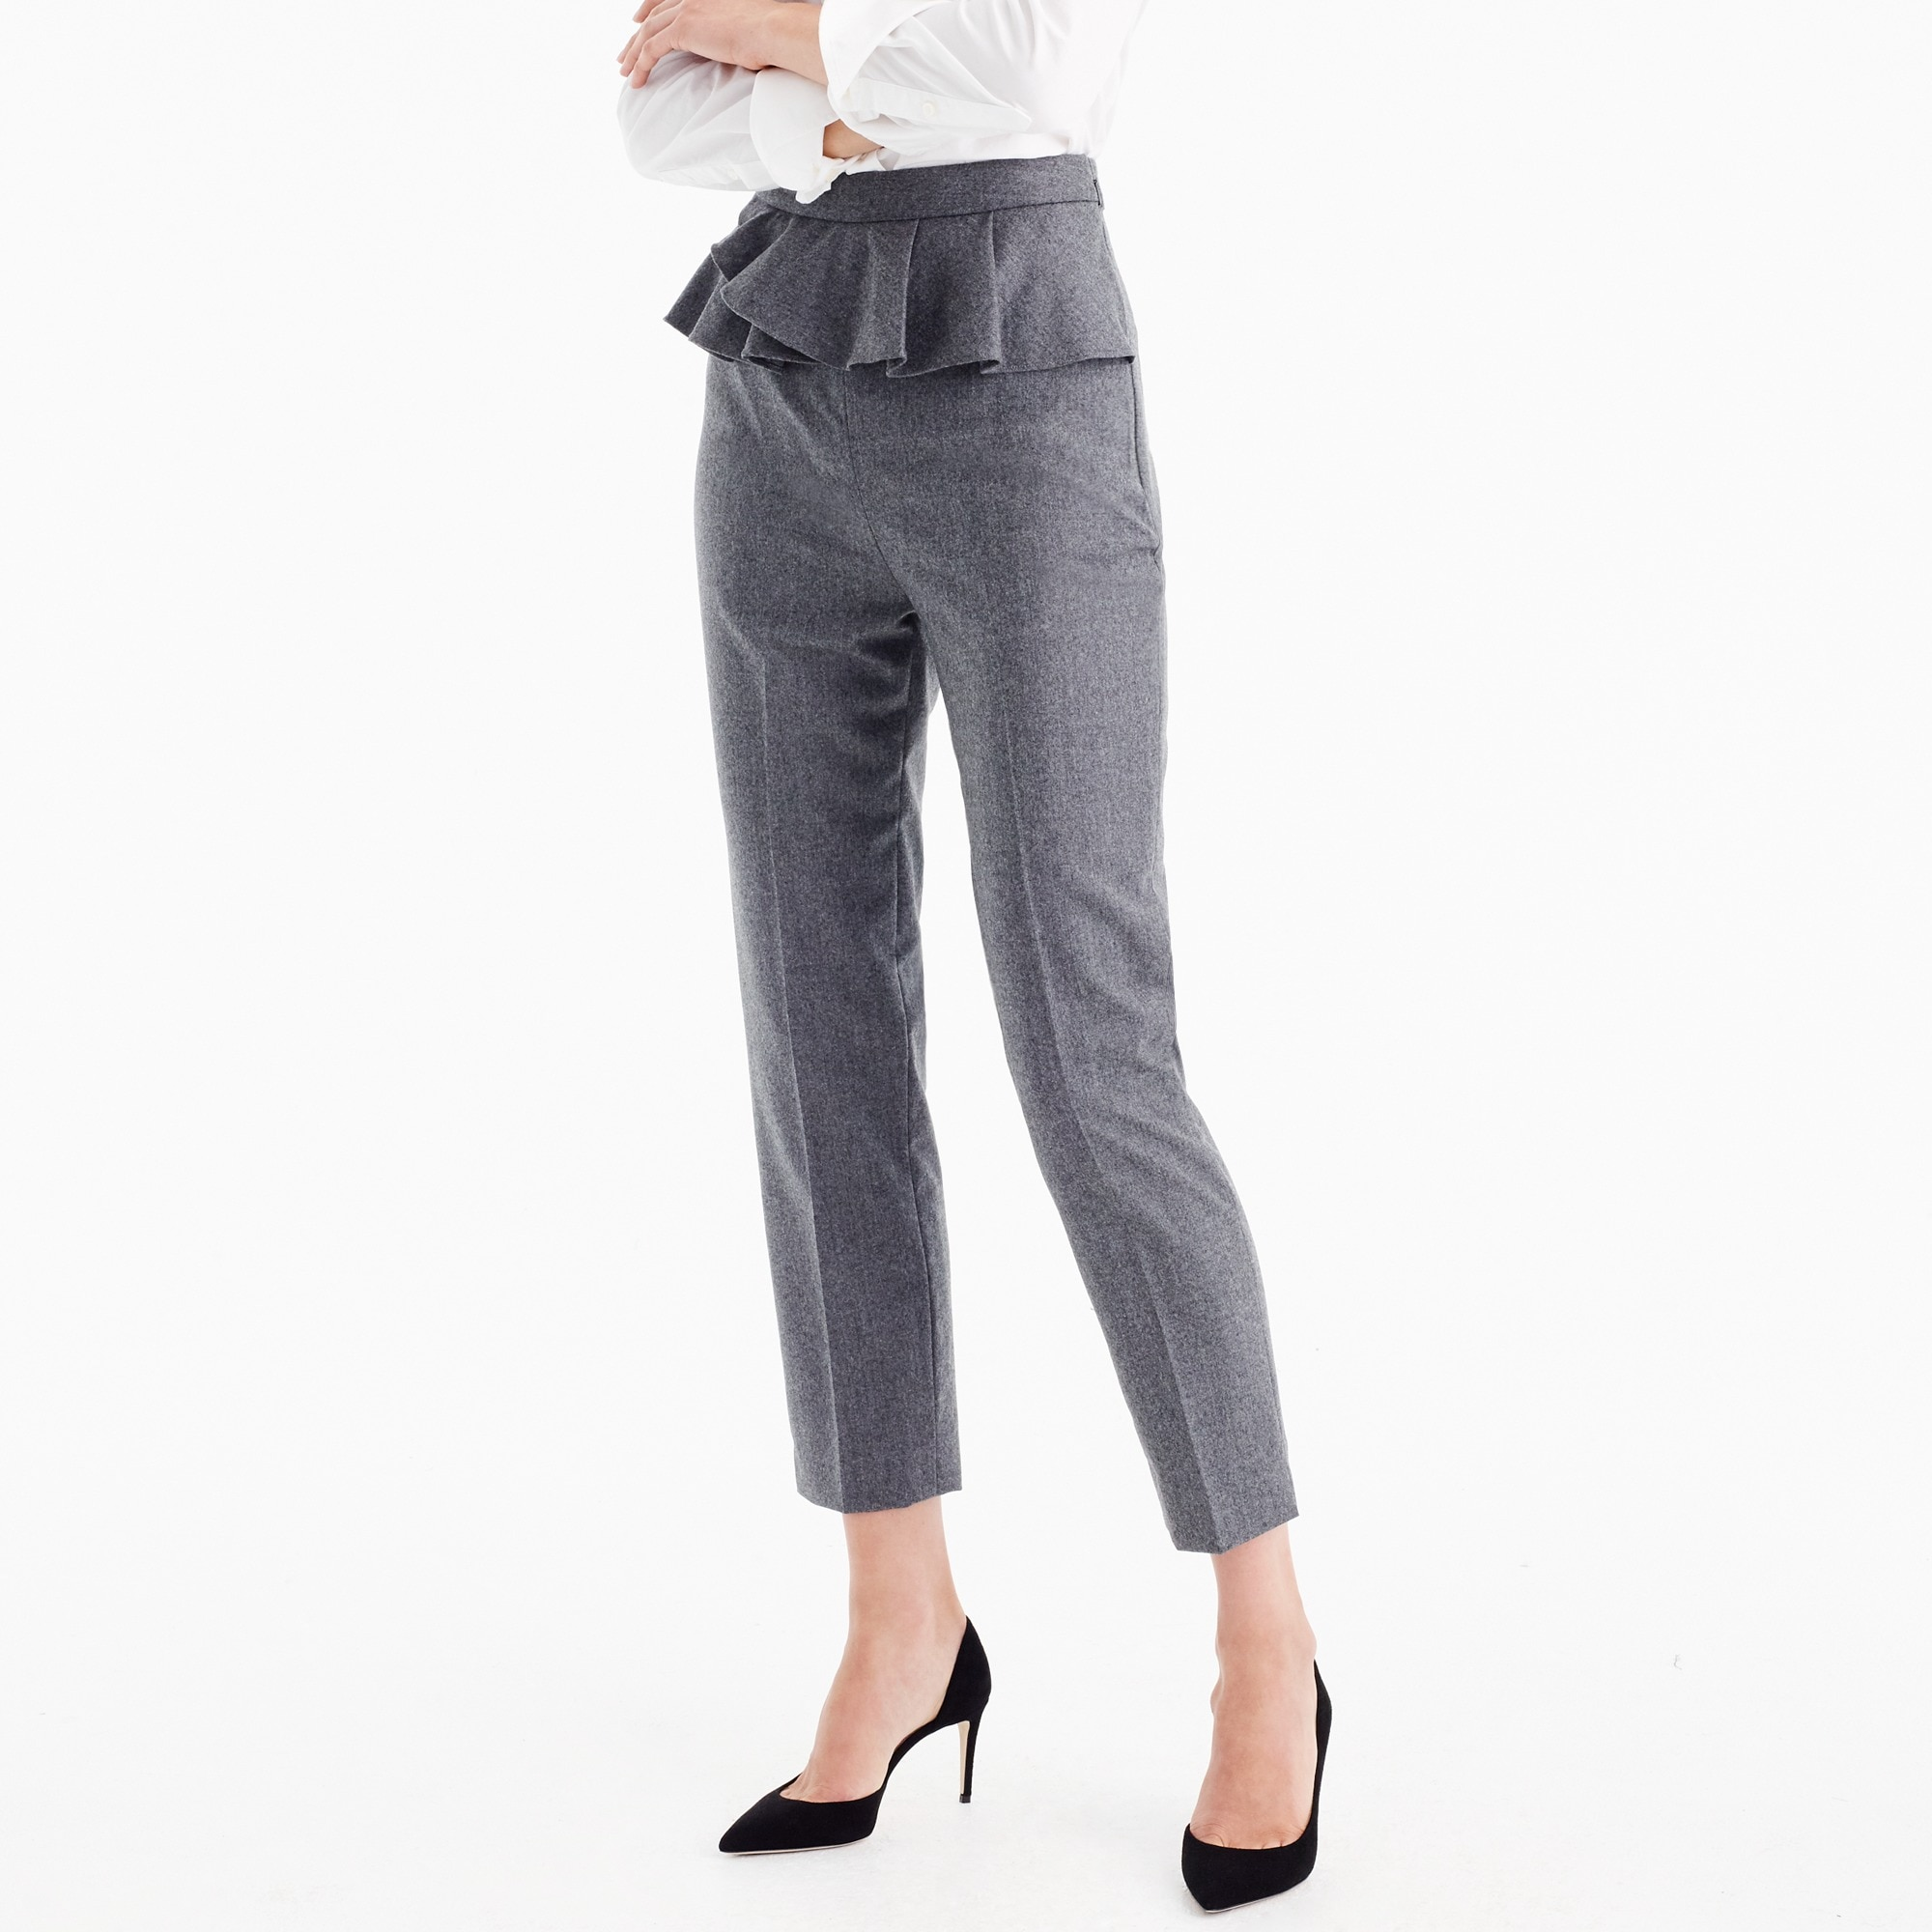 Image 1 for Slim trouser with ruffle waist in wool flannel